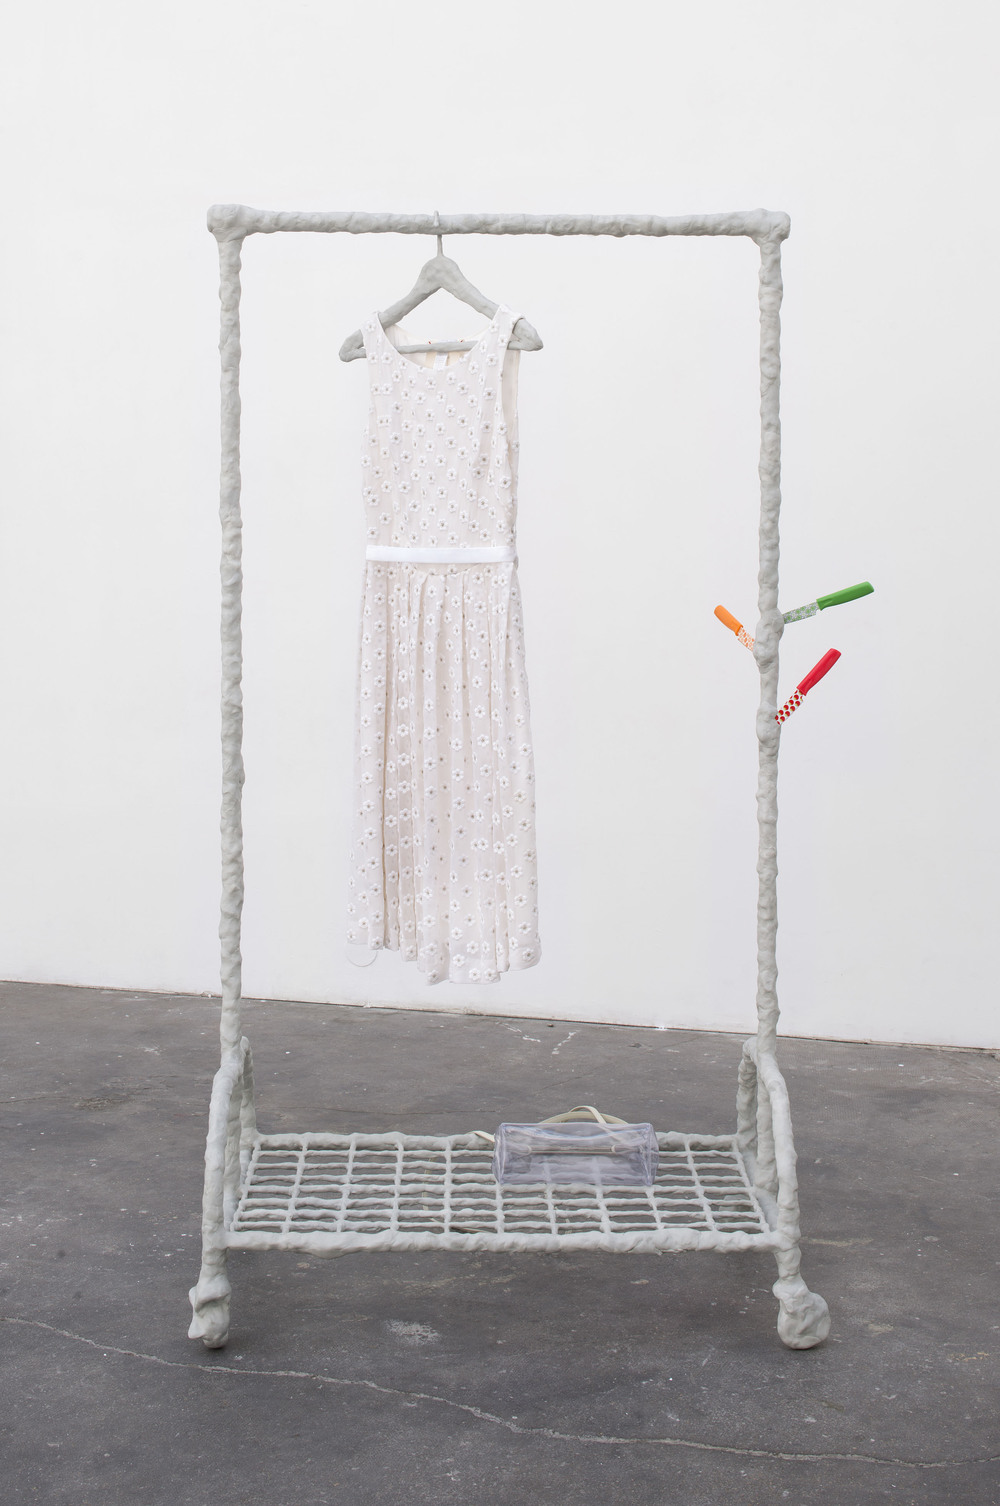 Website Two 2014 Collette Dinnigan, Simone Rocha, Target and Magic Sculpt 69.68 x 50 x 24.8 inches